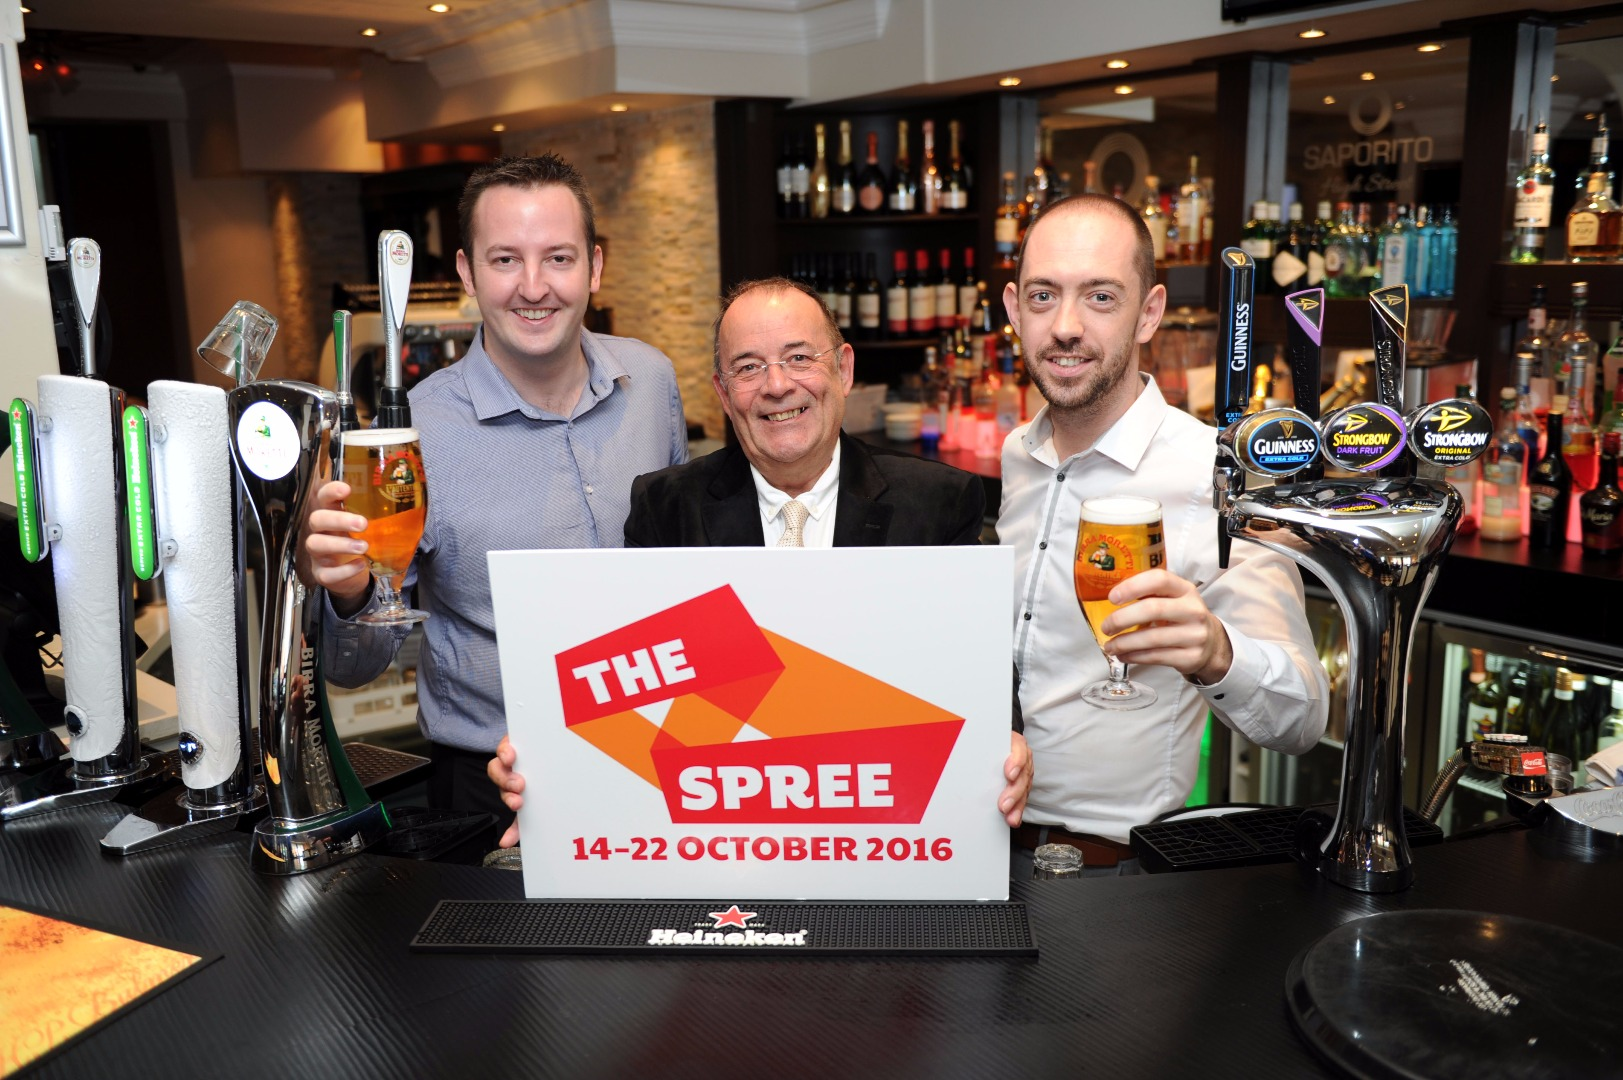 Spree festival raises a glass to official supporters Saporito